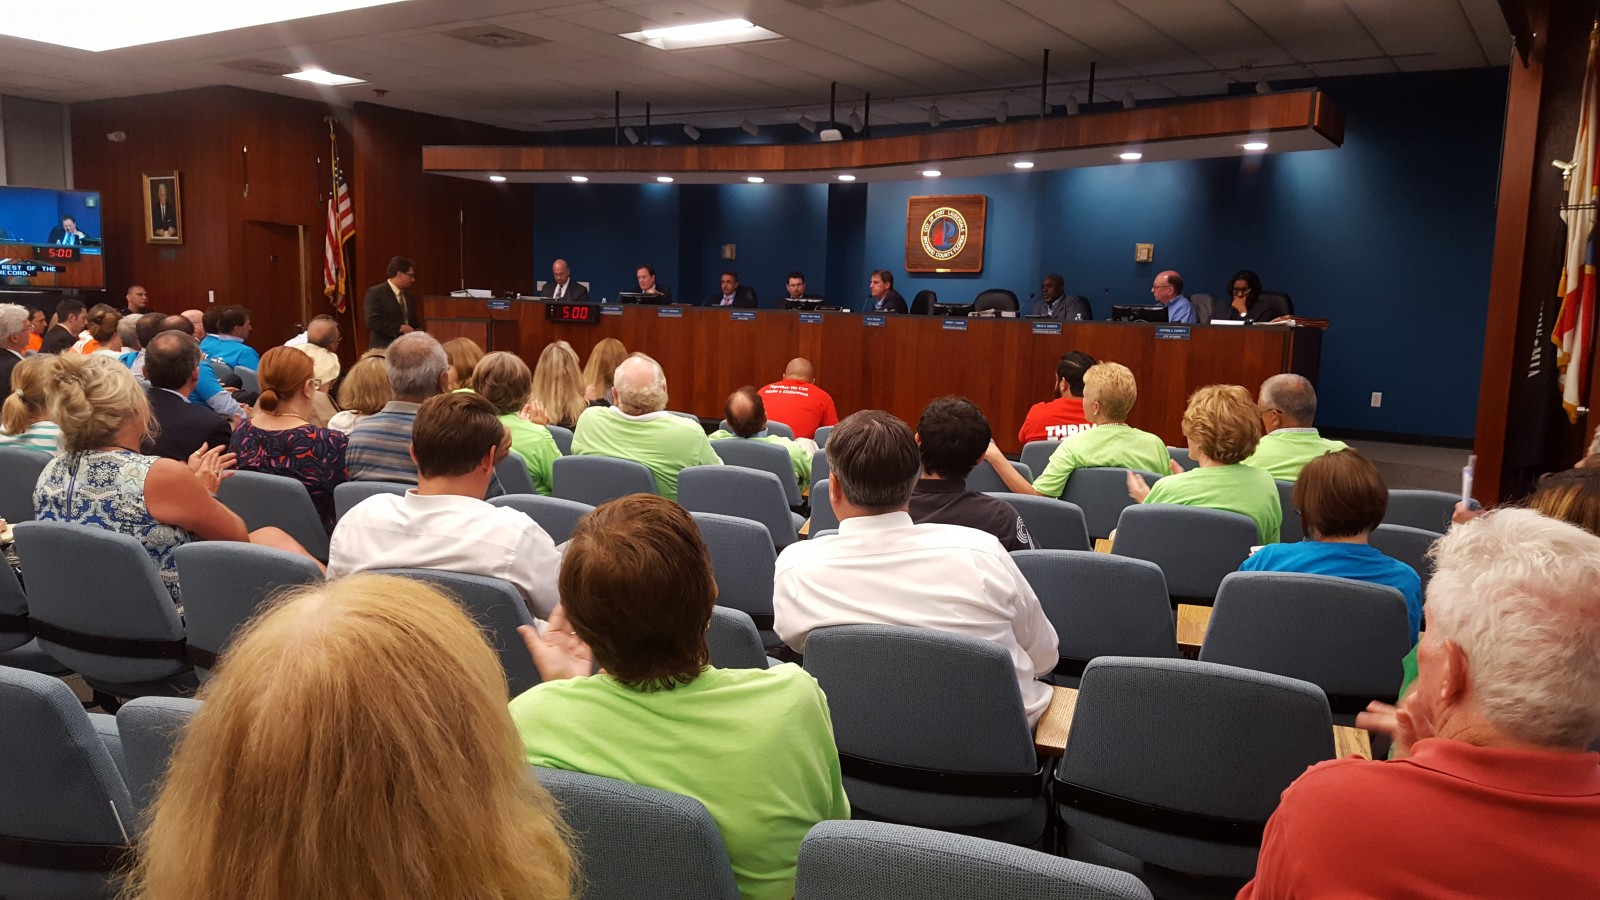 MARINAS city commission 6-7-16 android dc panel crowd